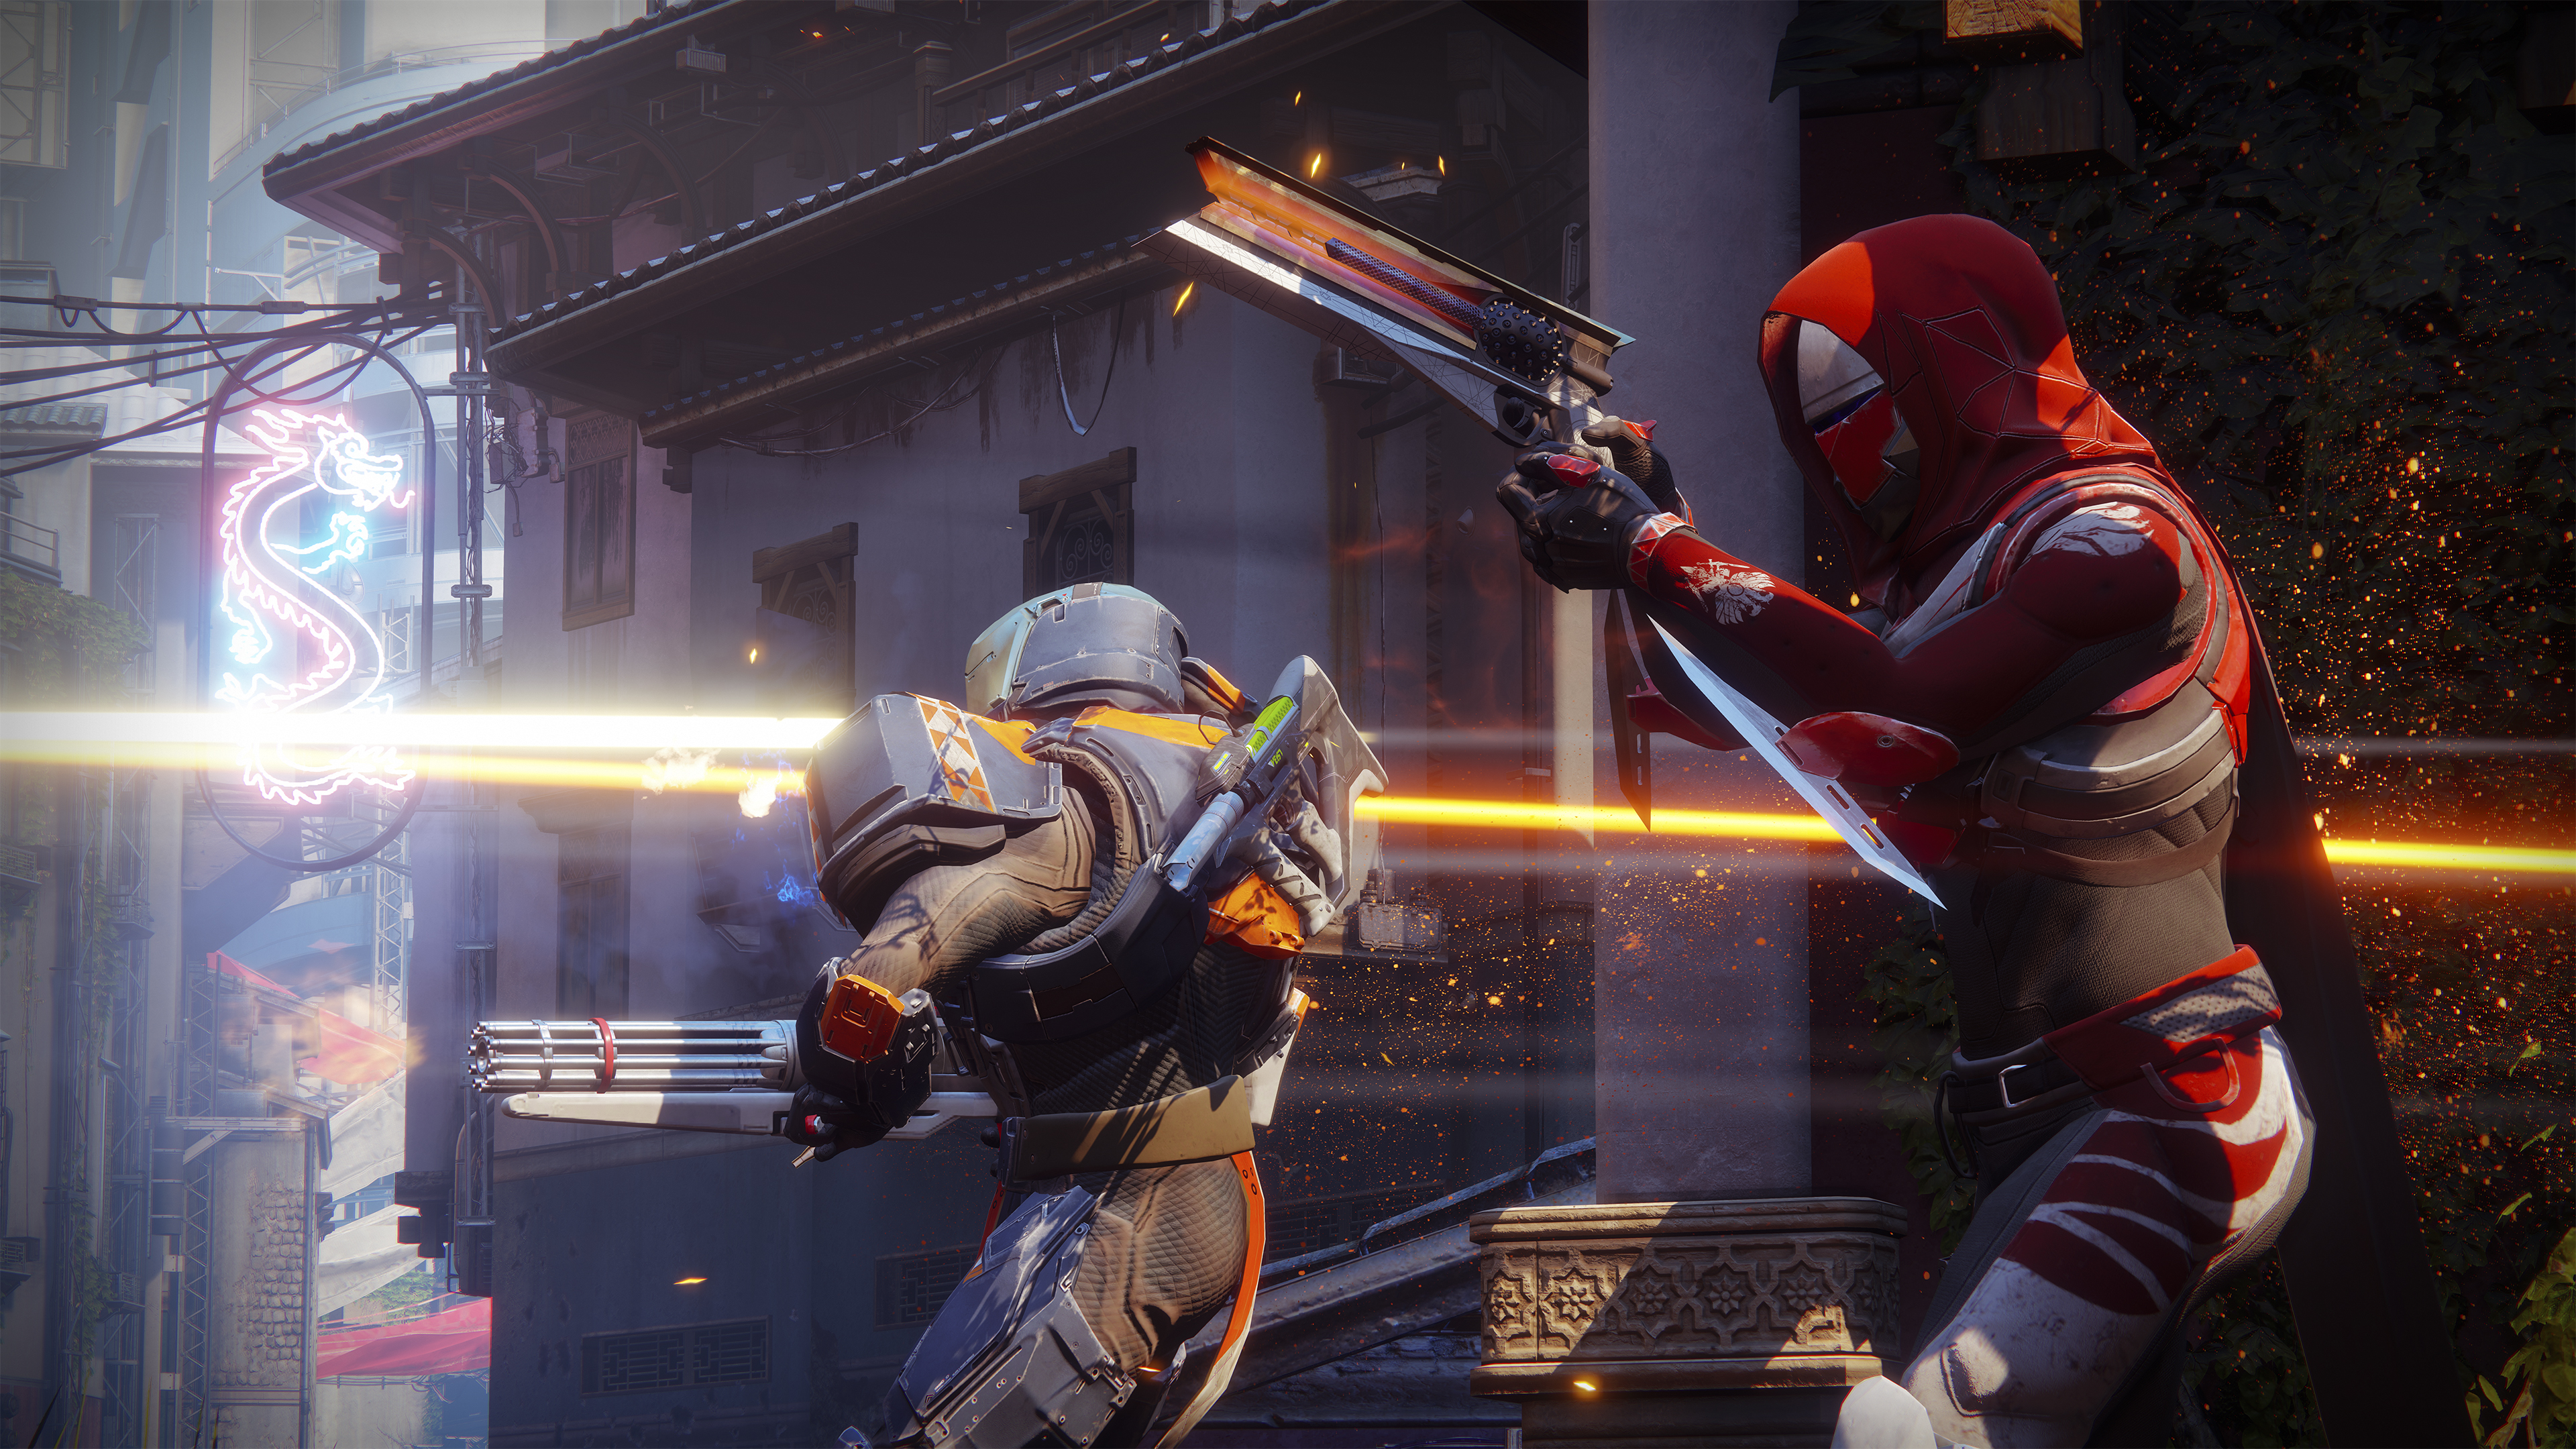 Destiny 2 system requirements, launch time, controls and app compatibility: everything the PC crowd needs